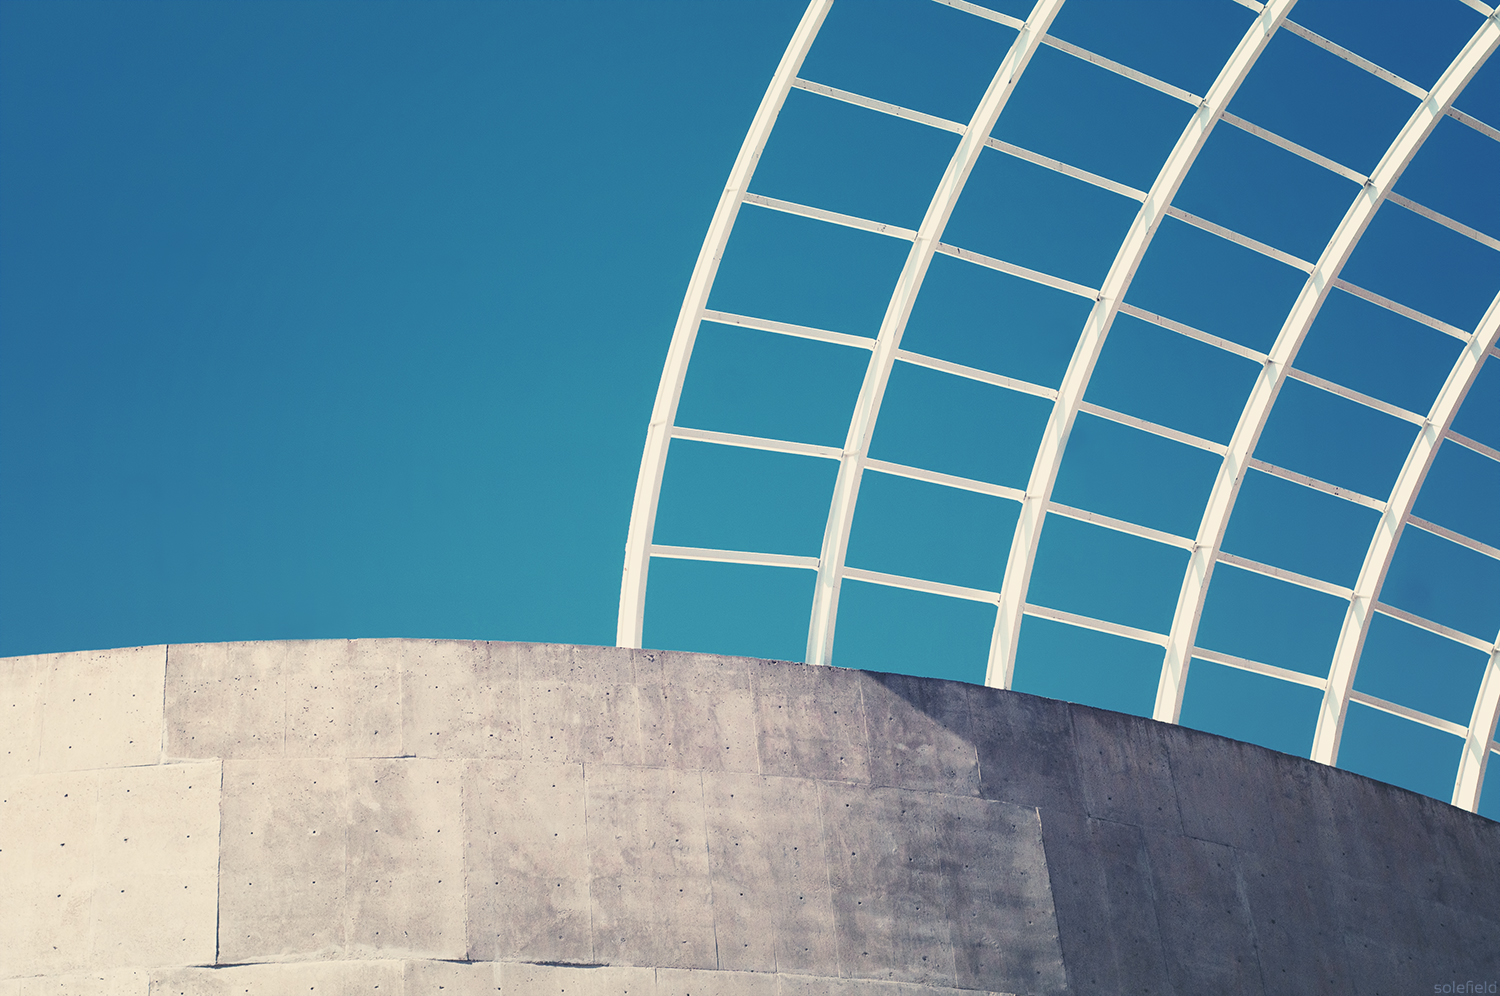 Blue and White Abstract Architecture